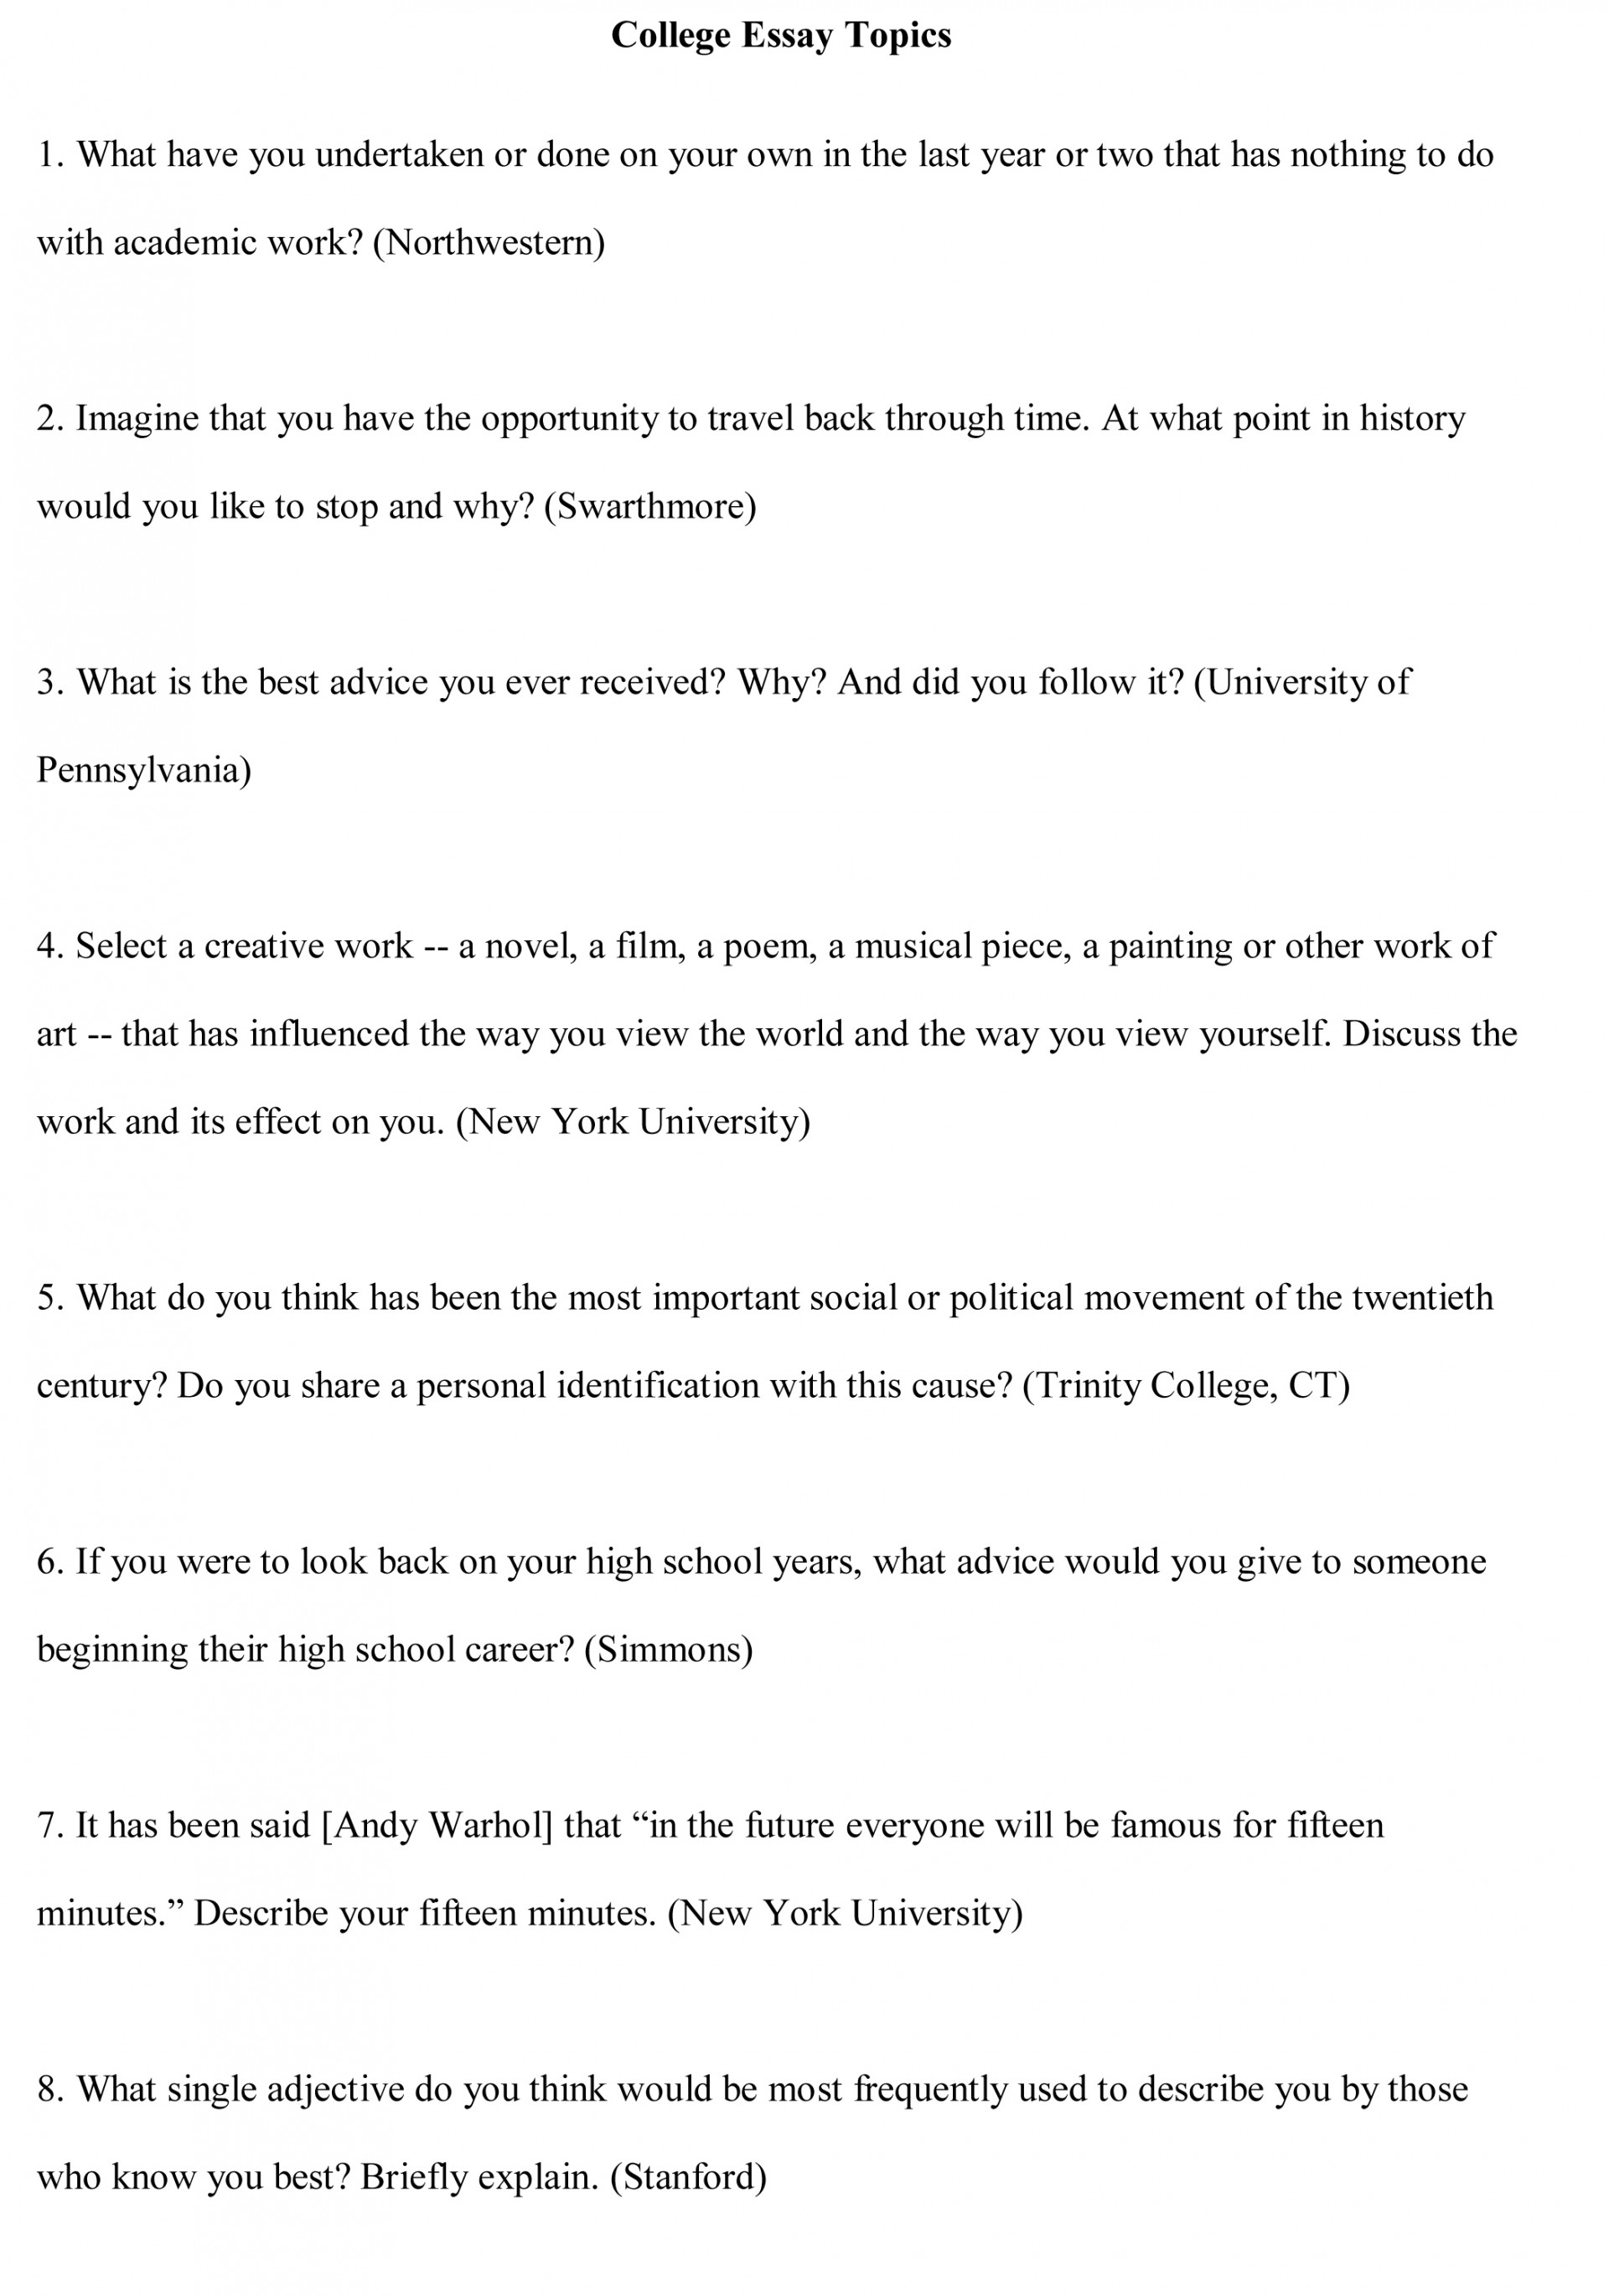 005 College Essay Topics Free Sample1 Good For Research Paper Breathtaking In Interesting Students Papers 1920